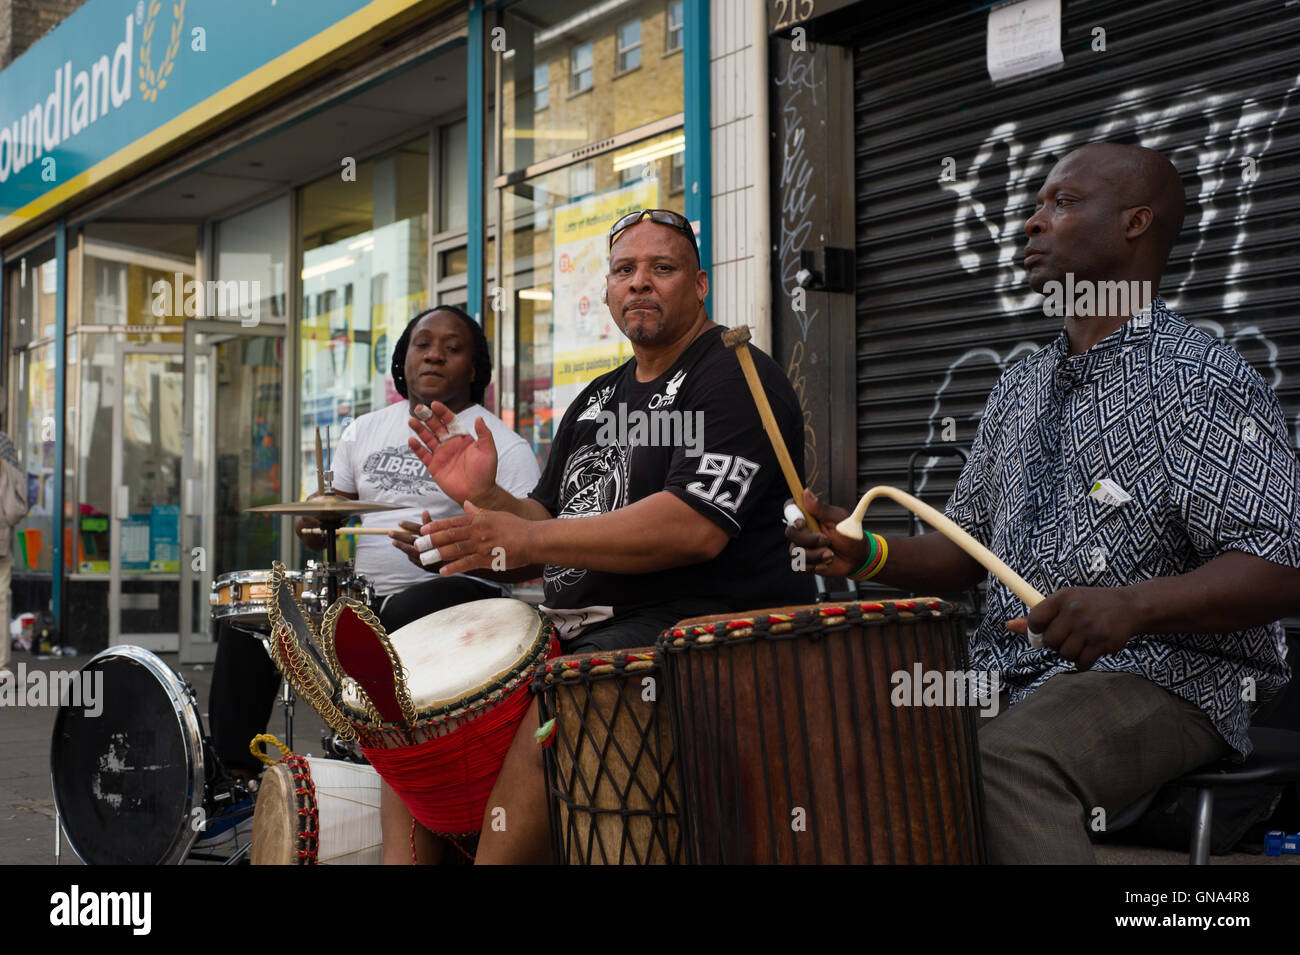 London, England, UK. 29th August 2016. Notting Hill Carnival 2016 during the bank holiday Monday. Street musicians - Stock Image